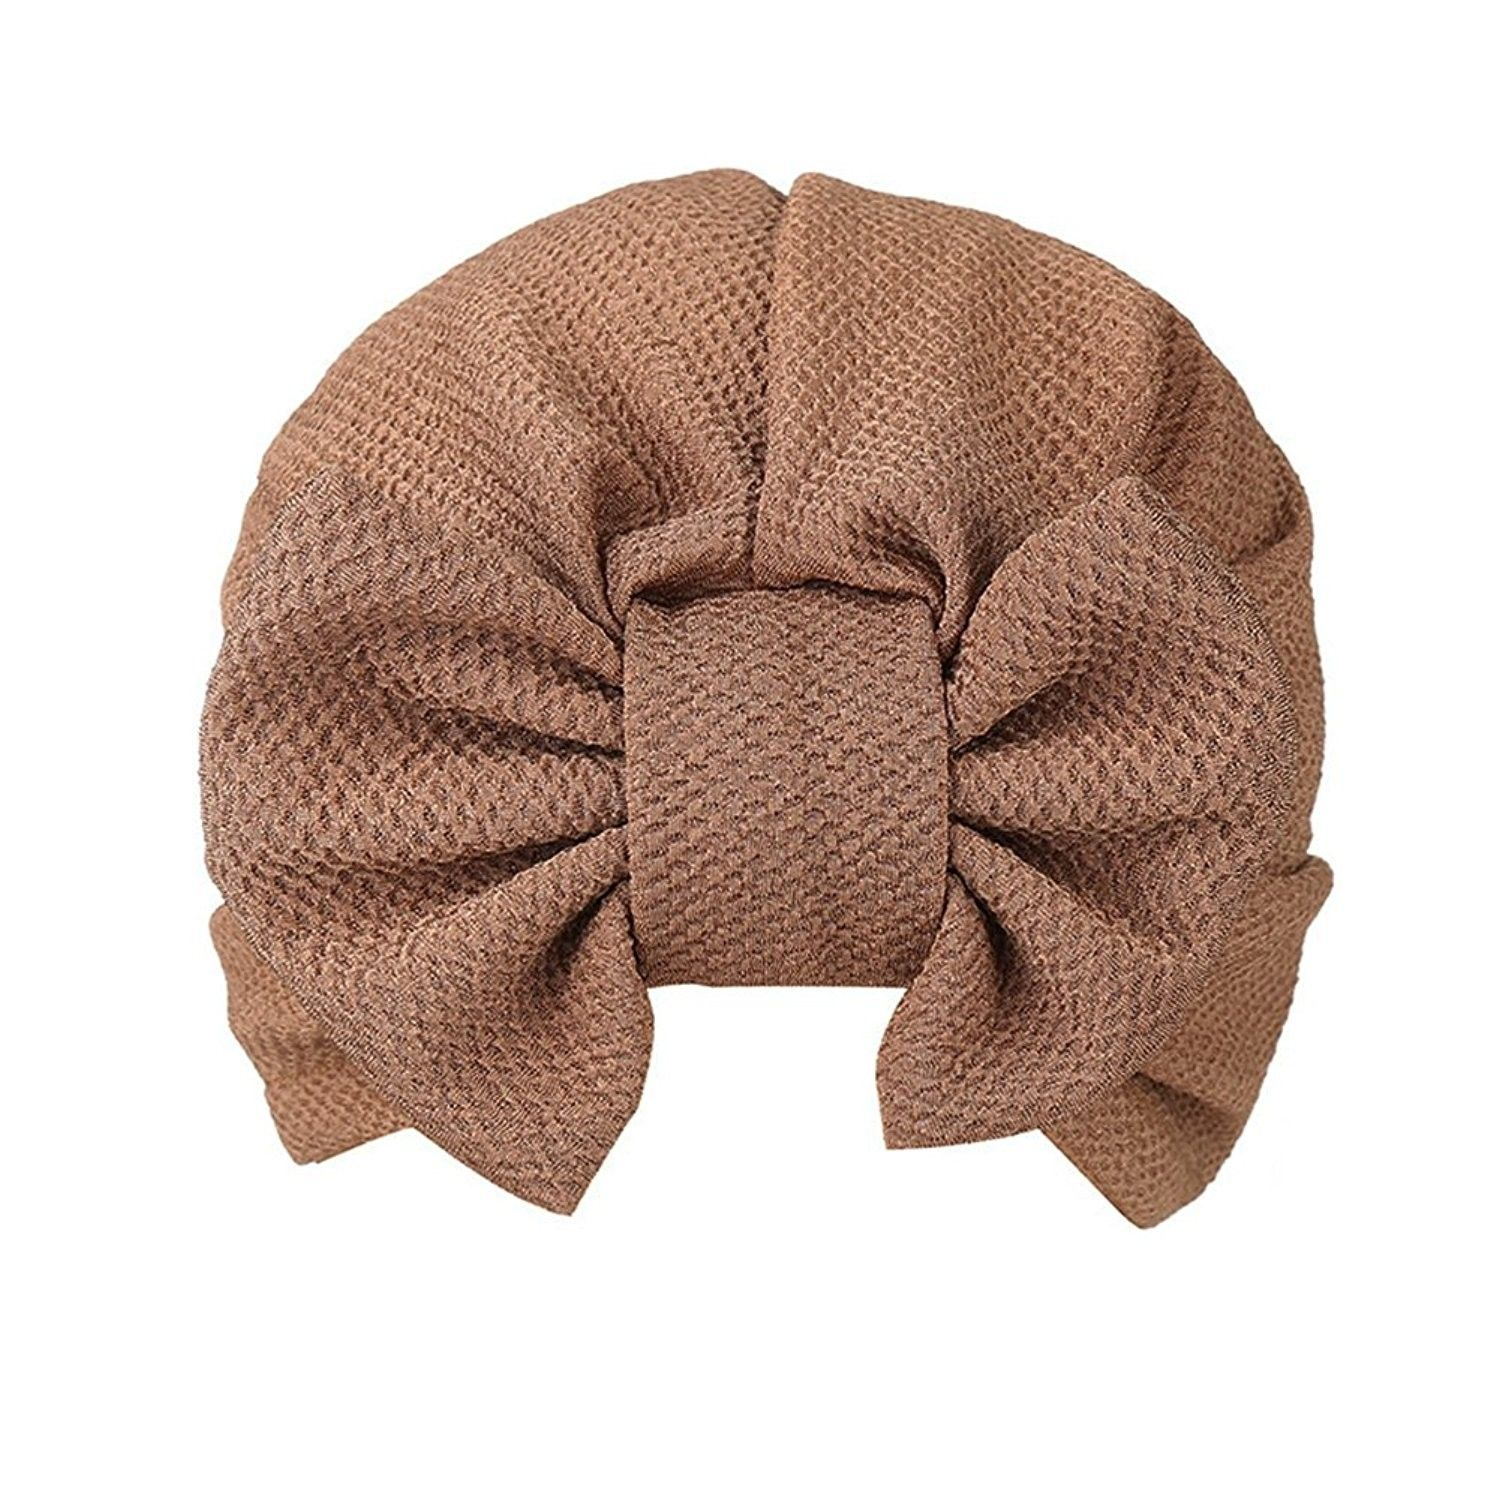 1b01d8147d5 Women s Bow Solid Pattern Stretch Turban Hat Hair Wrap Sun Cap ...